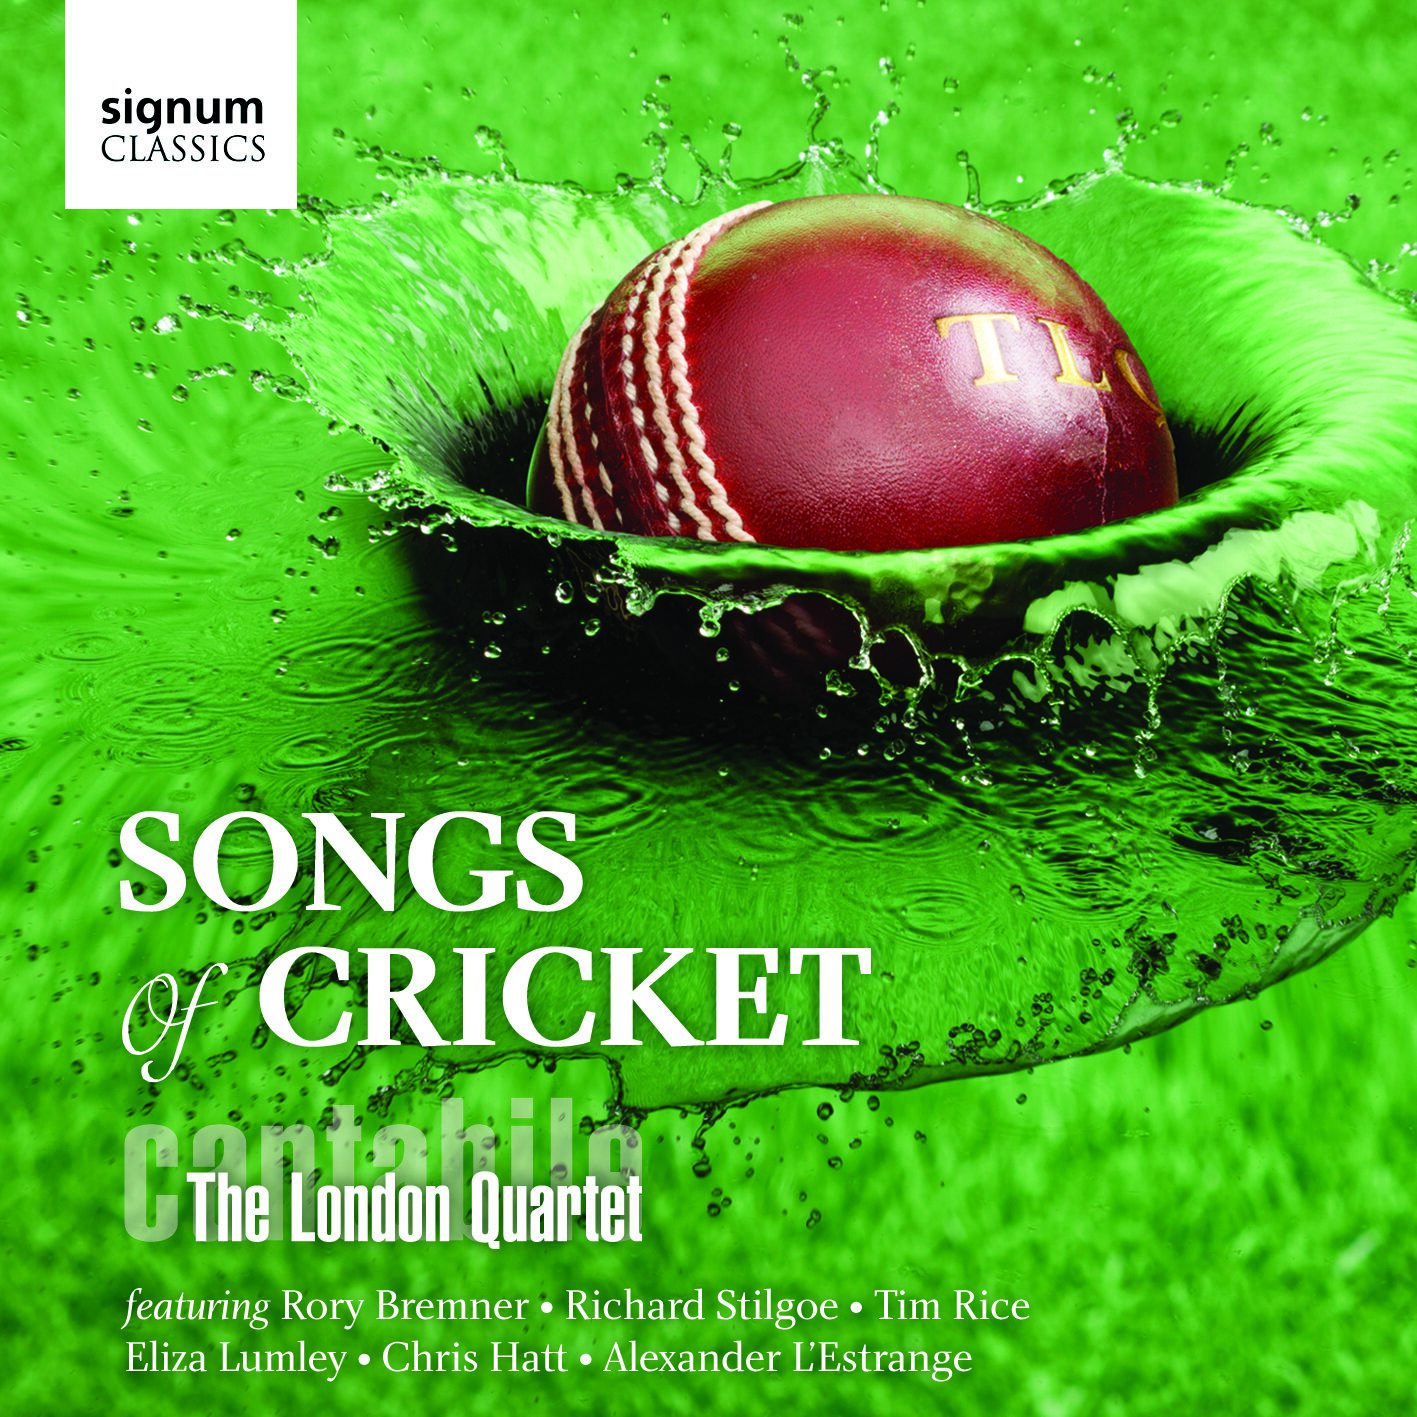 Songs of Cricket cover image.jpeg